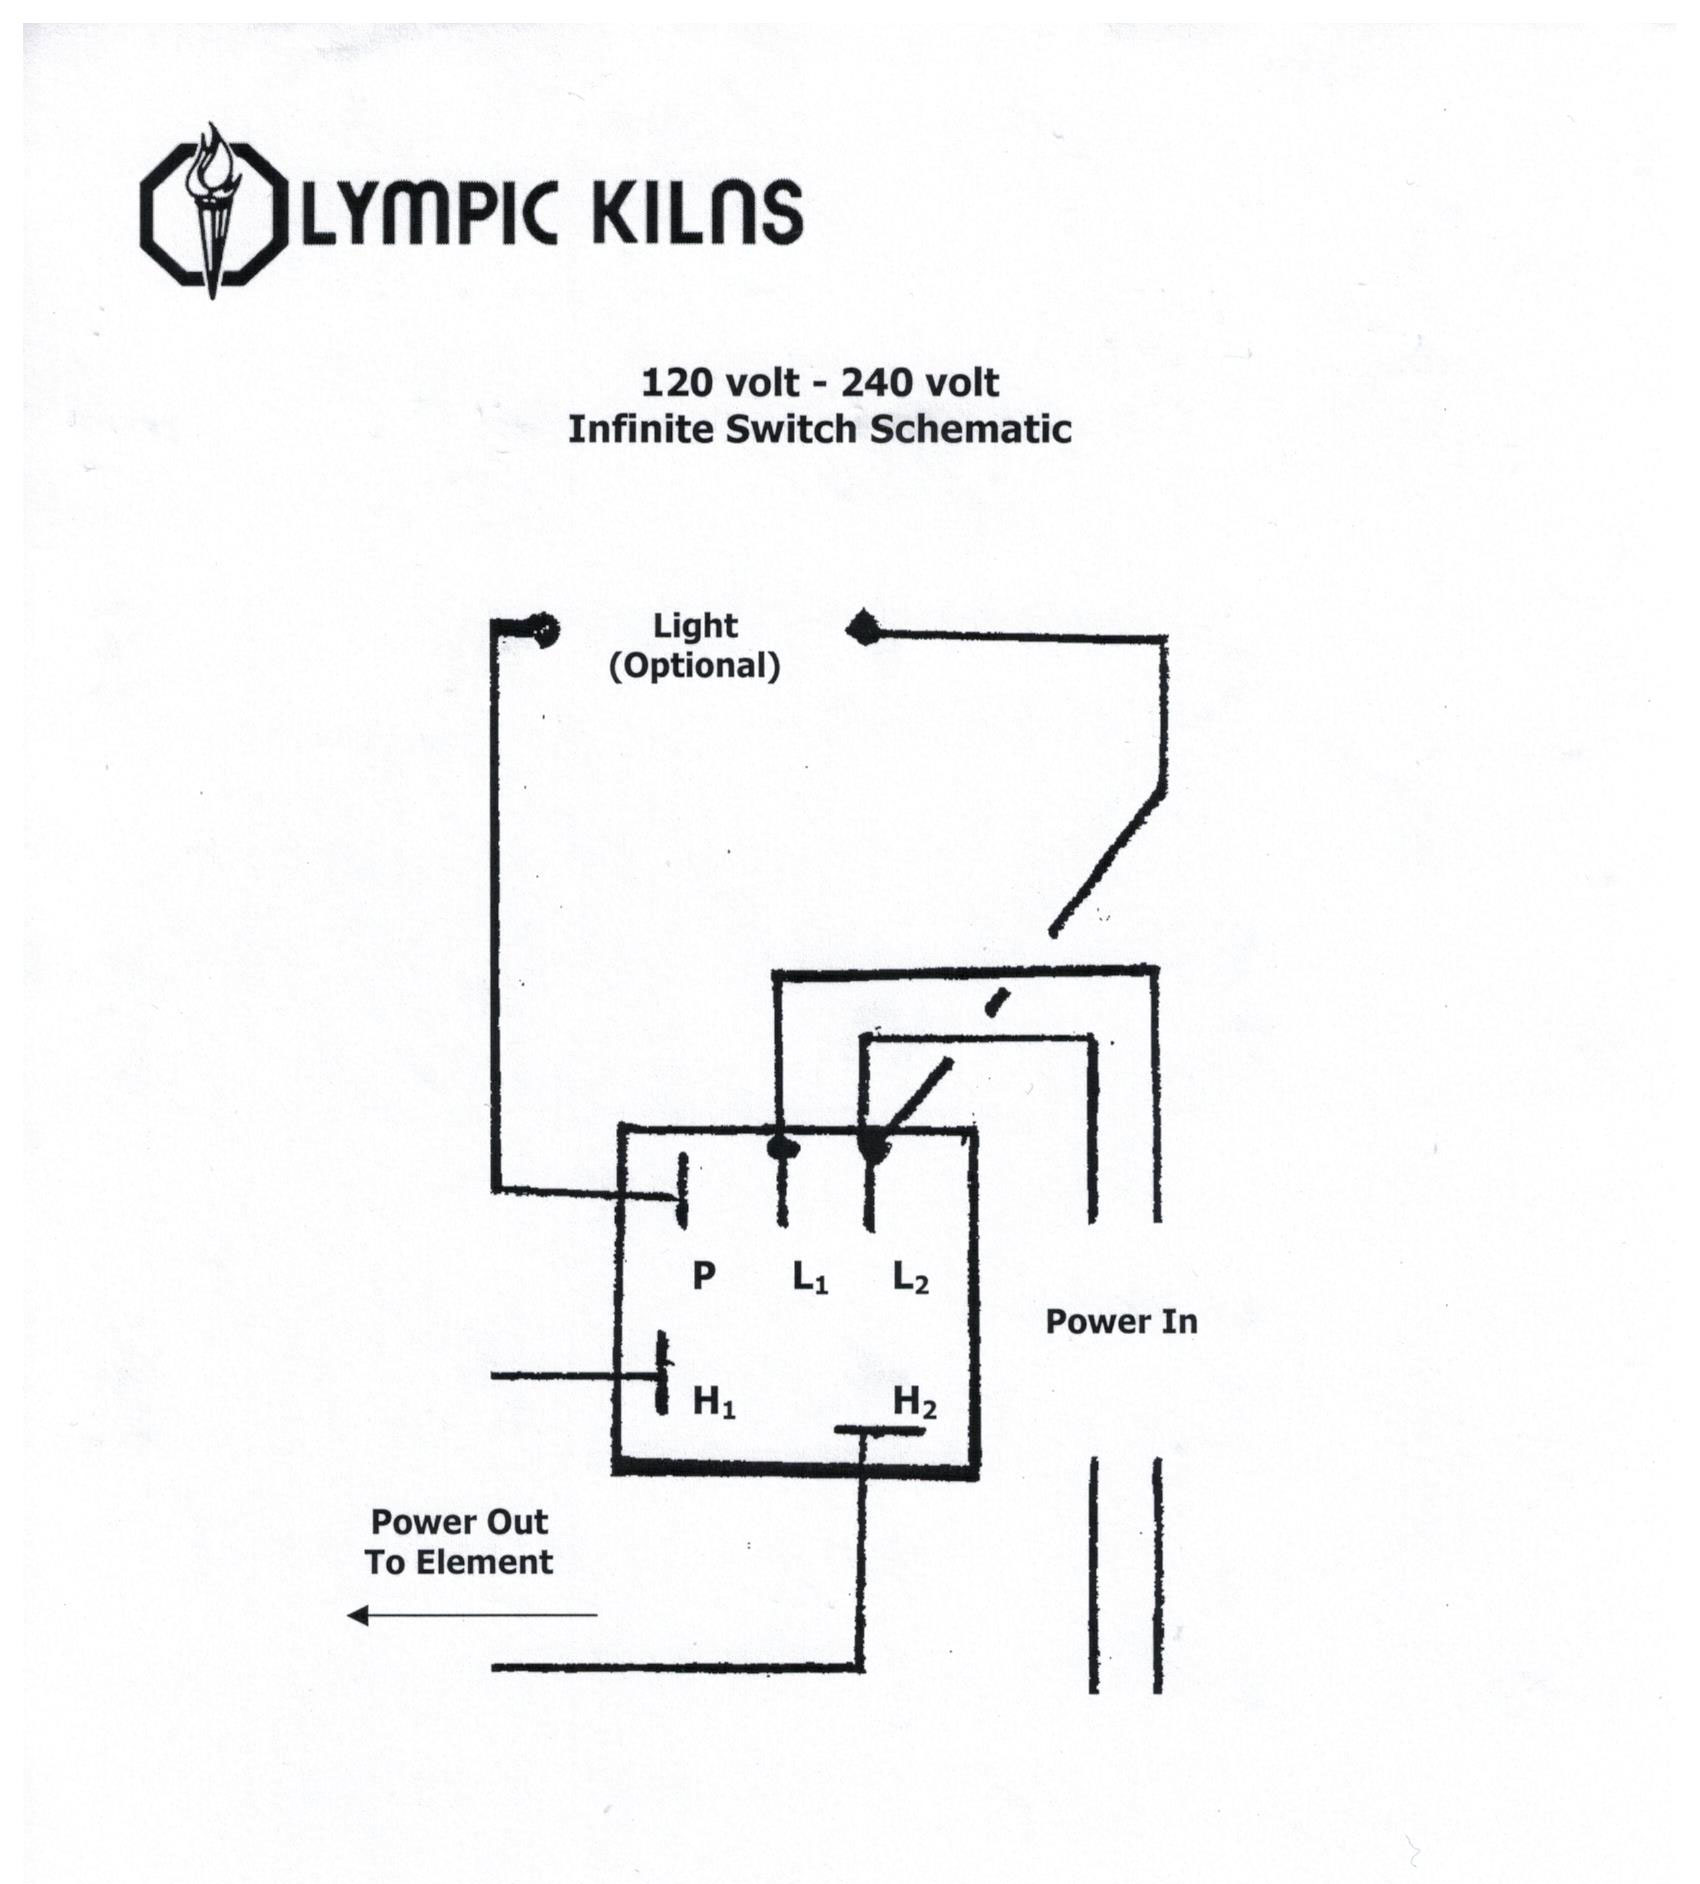 infinite switch paragon kiln elements with element connectors clay king com paragon kiln wiring schematic at cita.asia